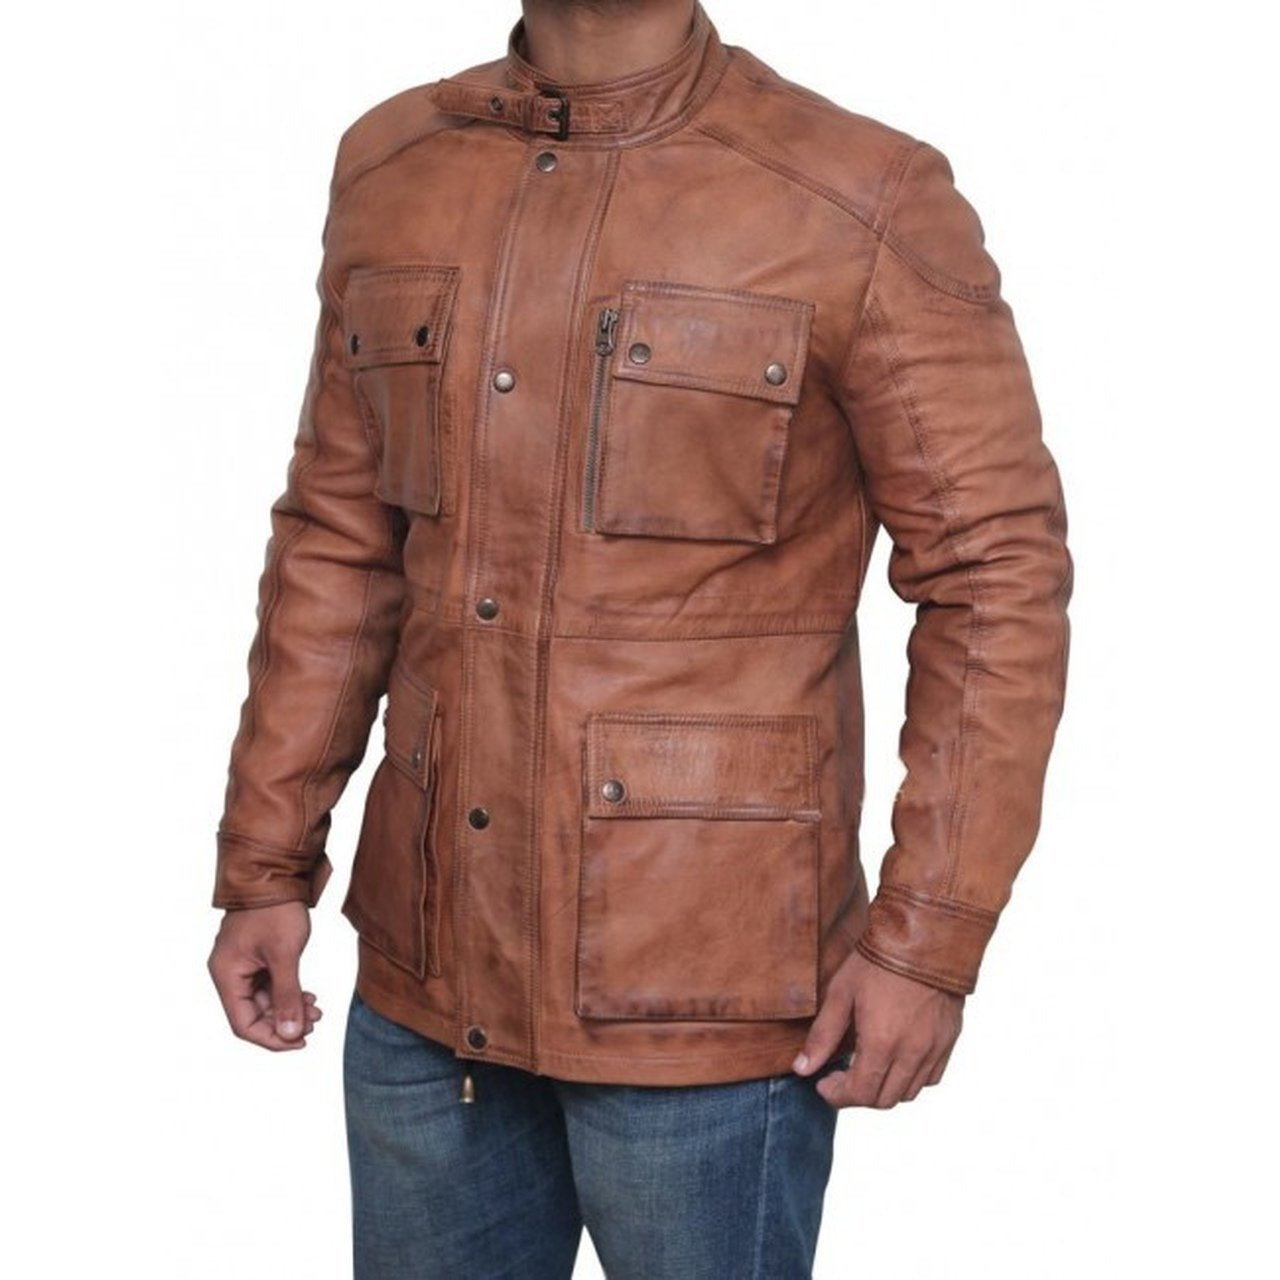 Chocolate Brown Panther Four Pocket Leather Jacket - Leather Jacket